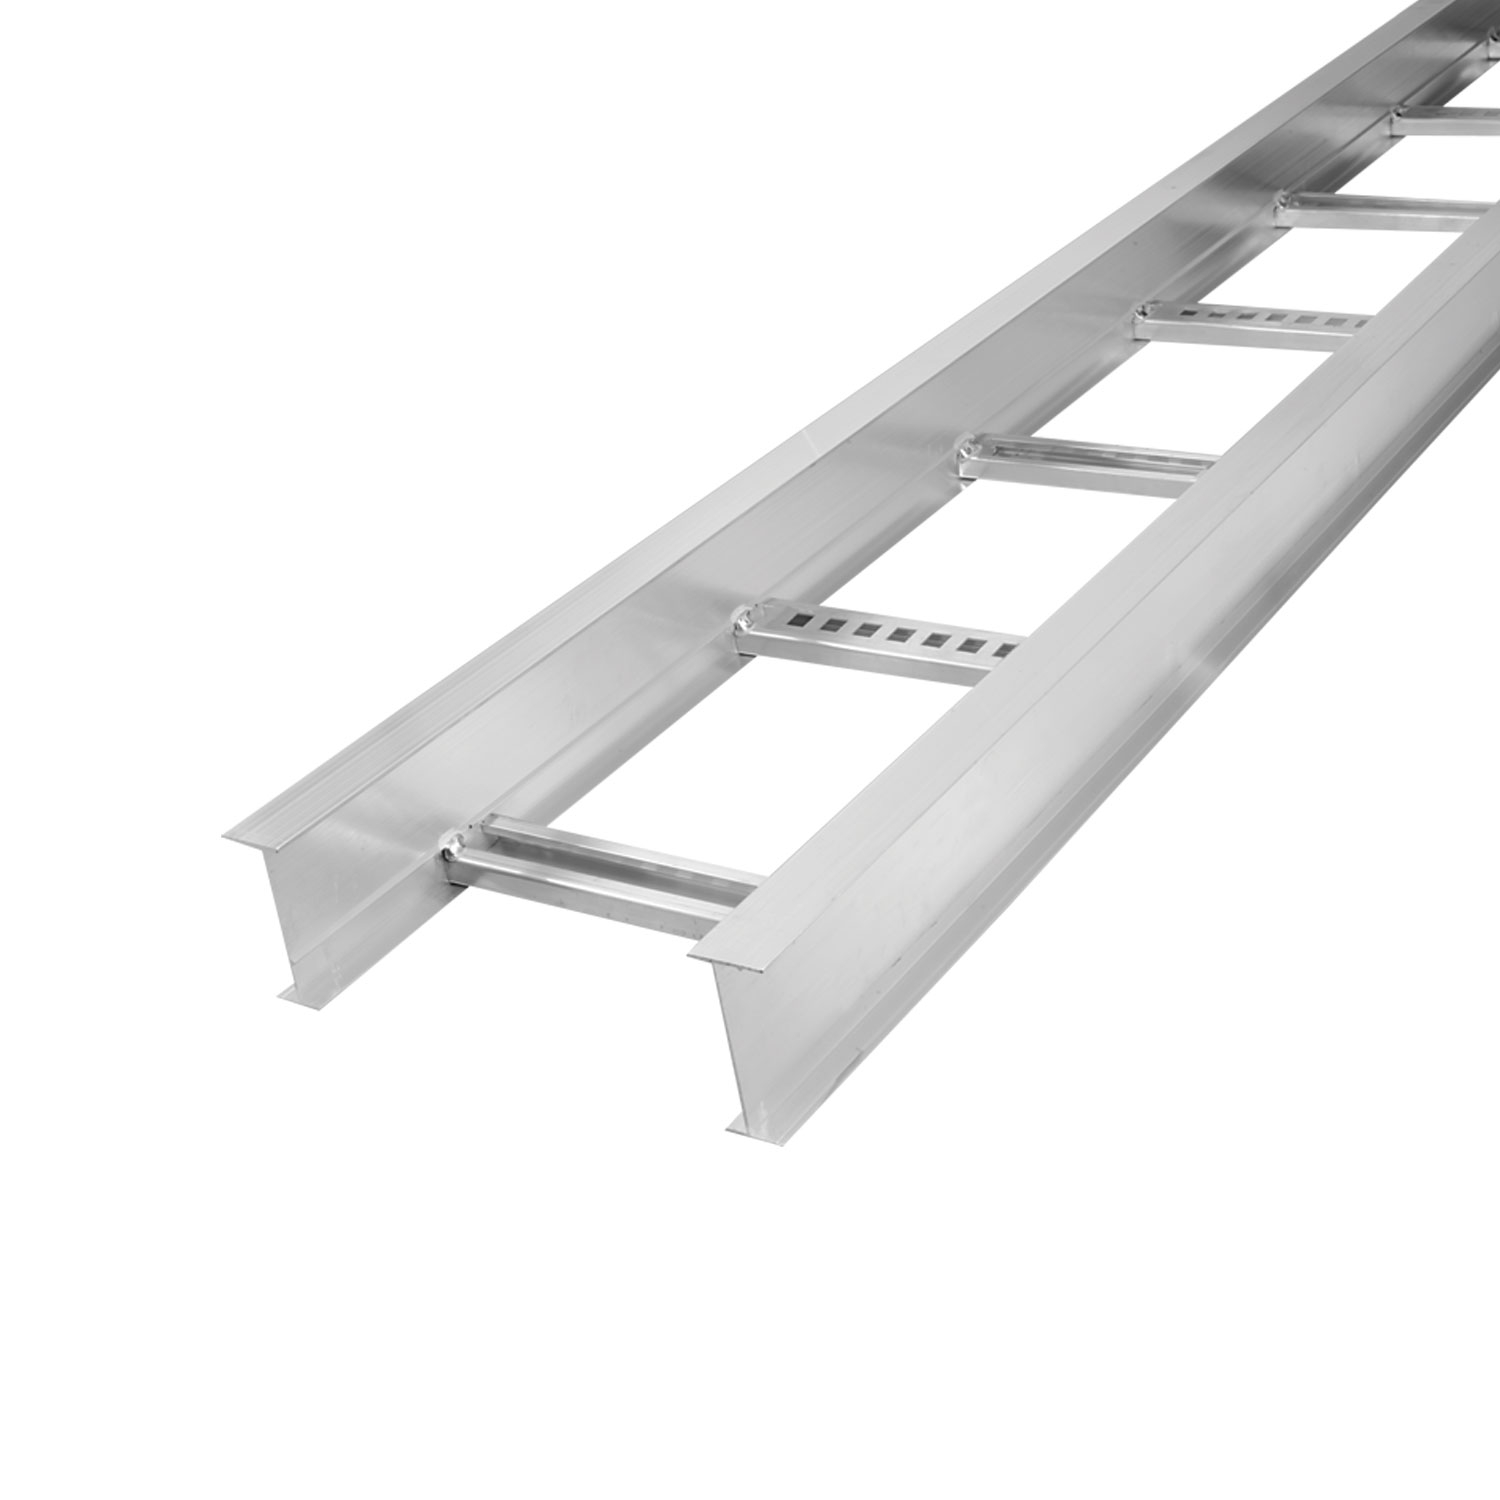 AL STR 7IN 24W LADDER TRAY 24FT